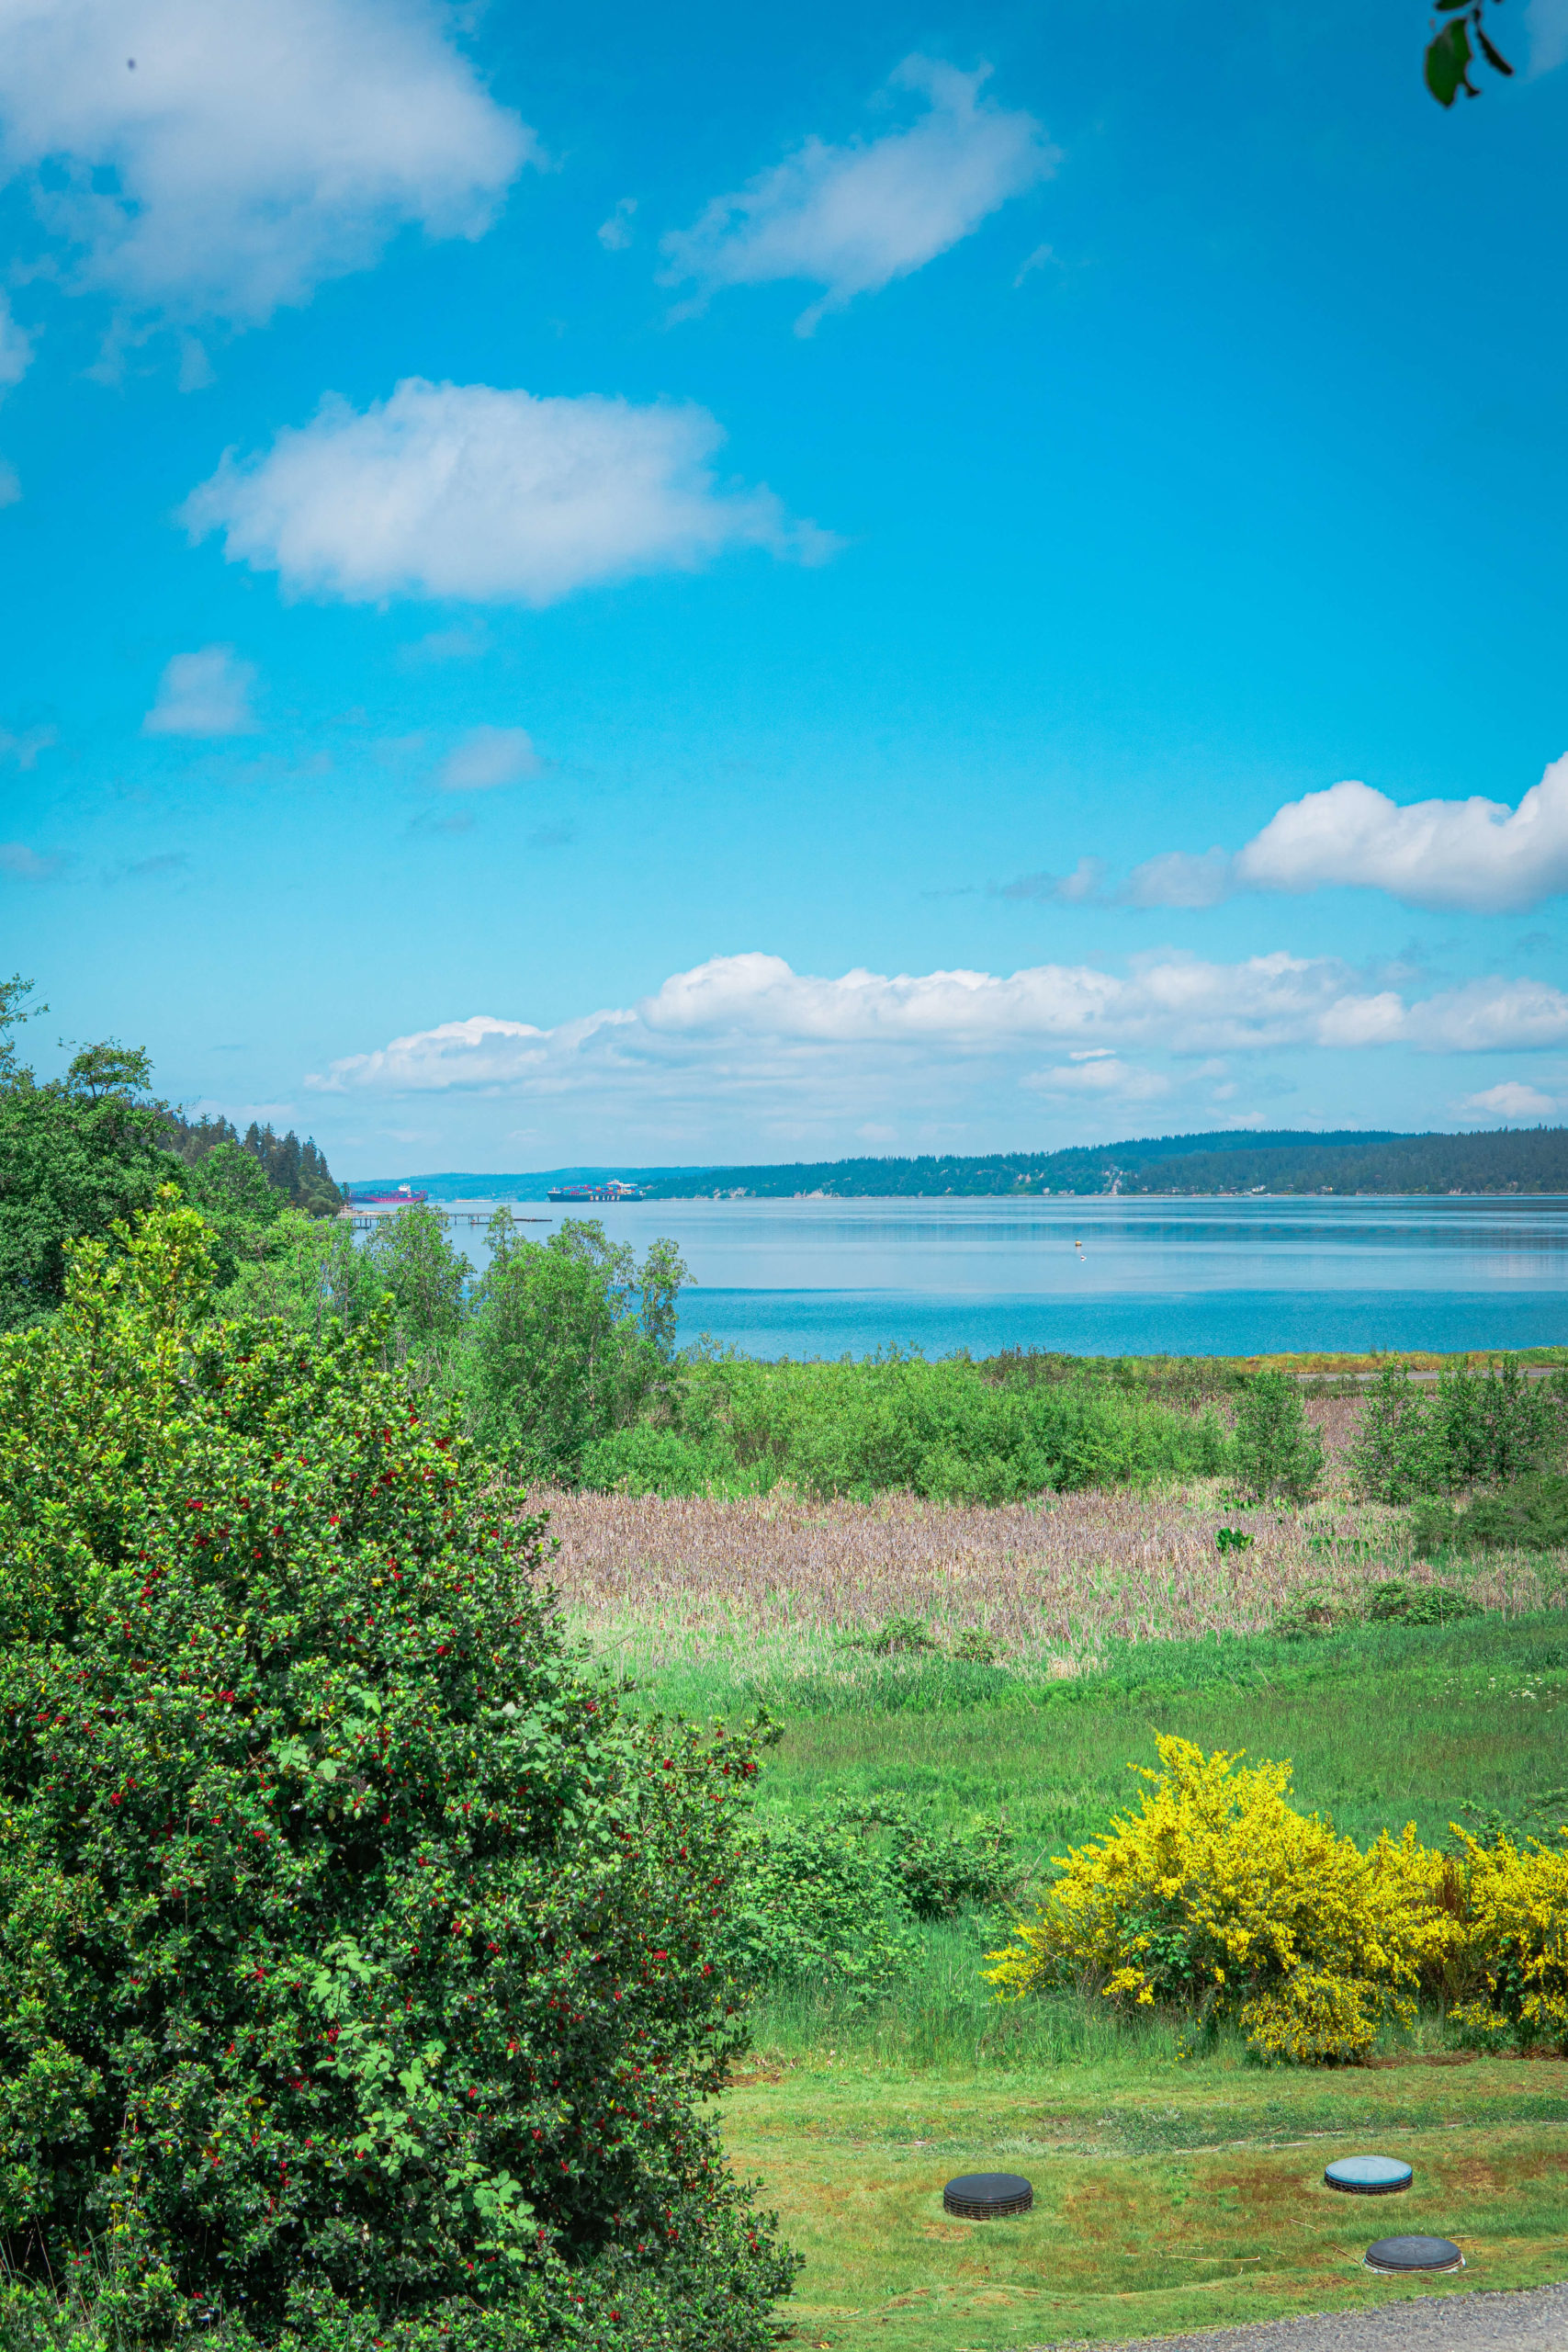 Things to do in Whidbey Island